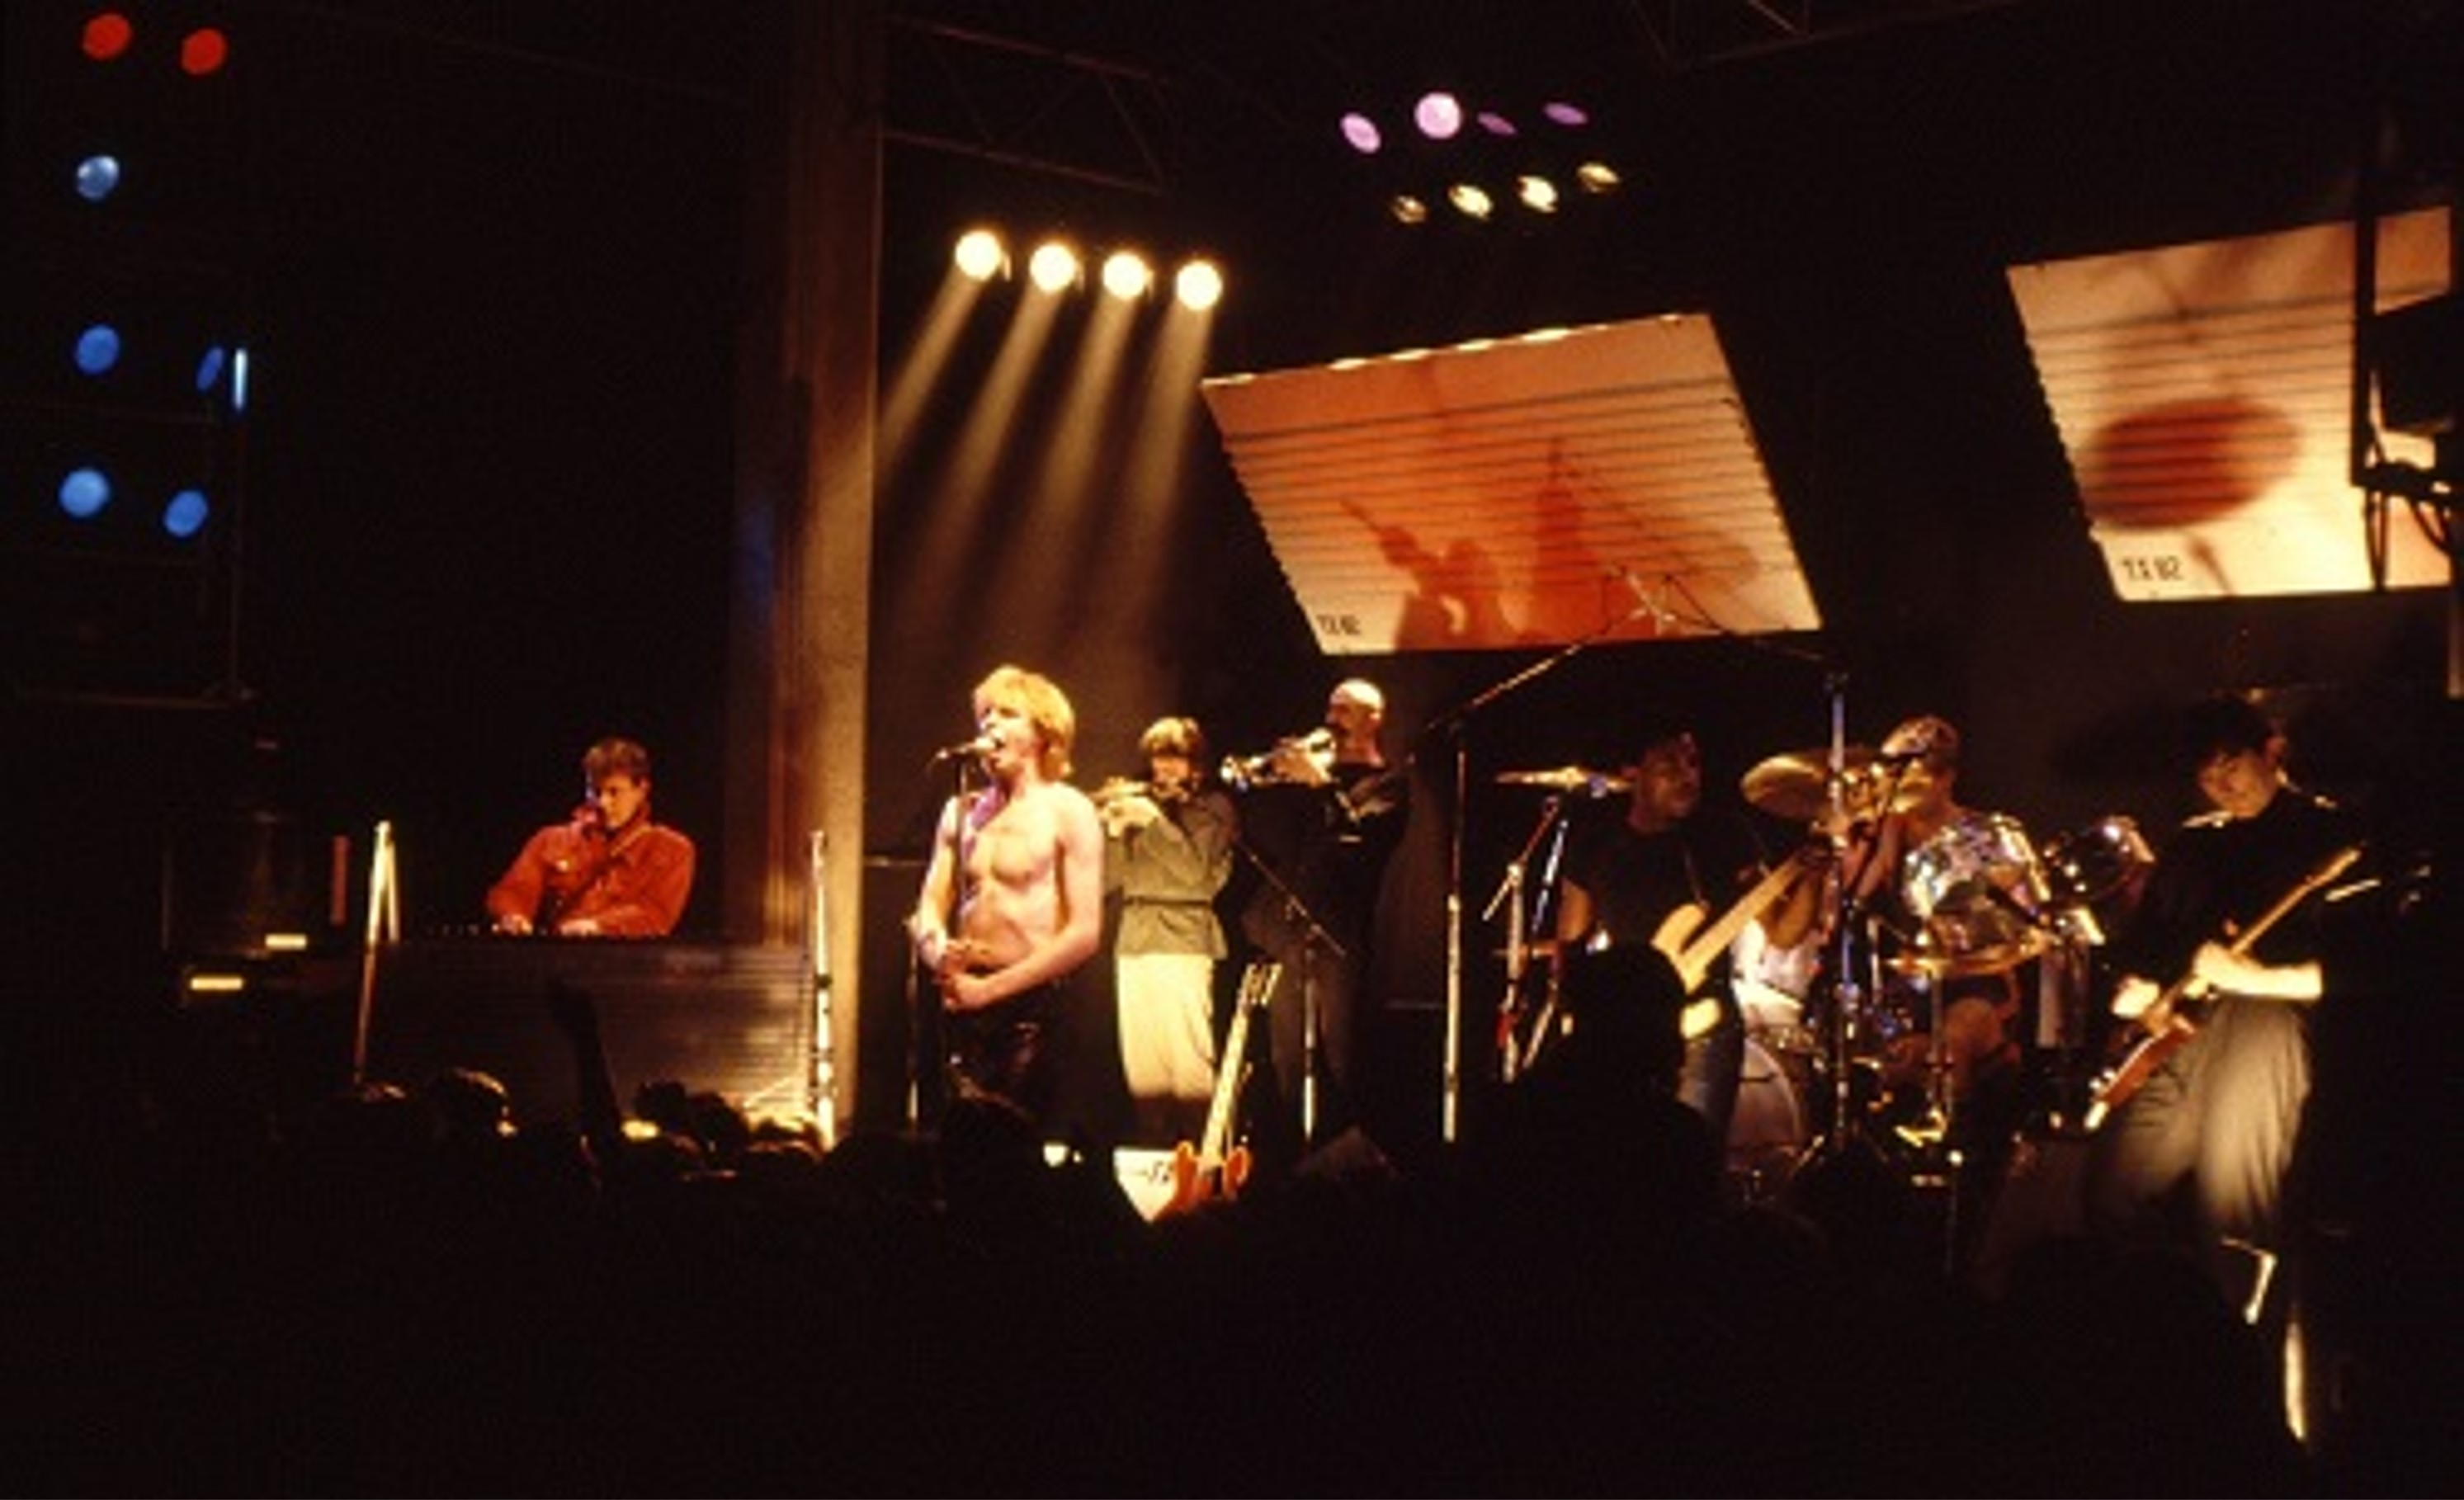 Teardrop explodes at uea in 1981